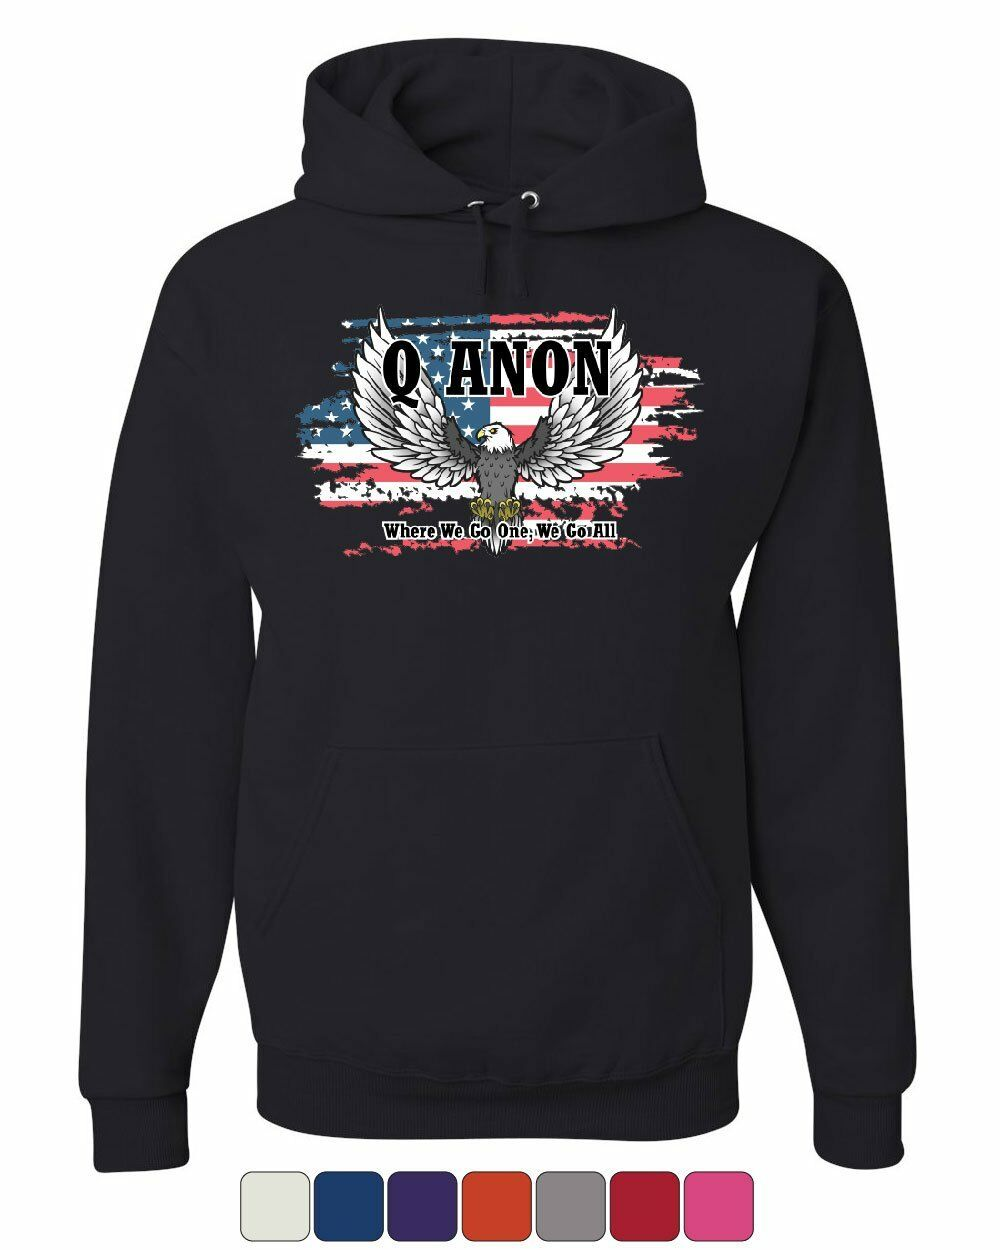 Q Anon Bald Eagle Hoodie Where We Go 1 We Go All American Flag Sweatshirt